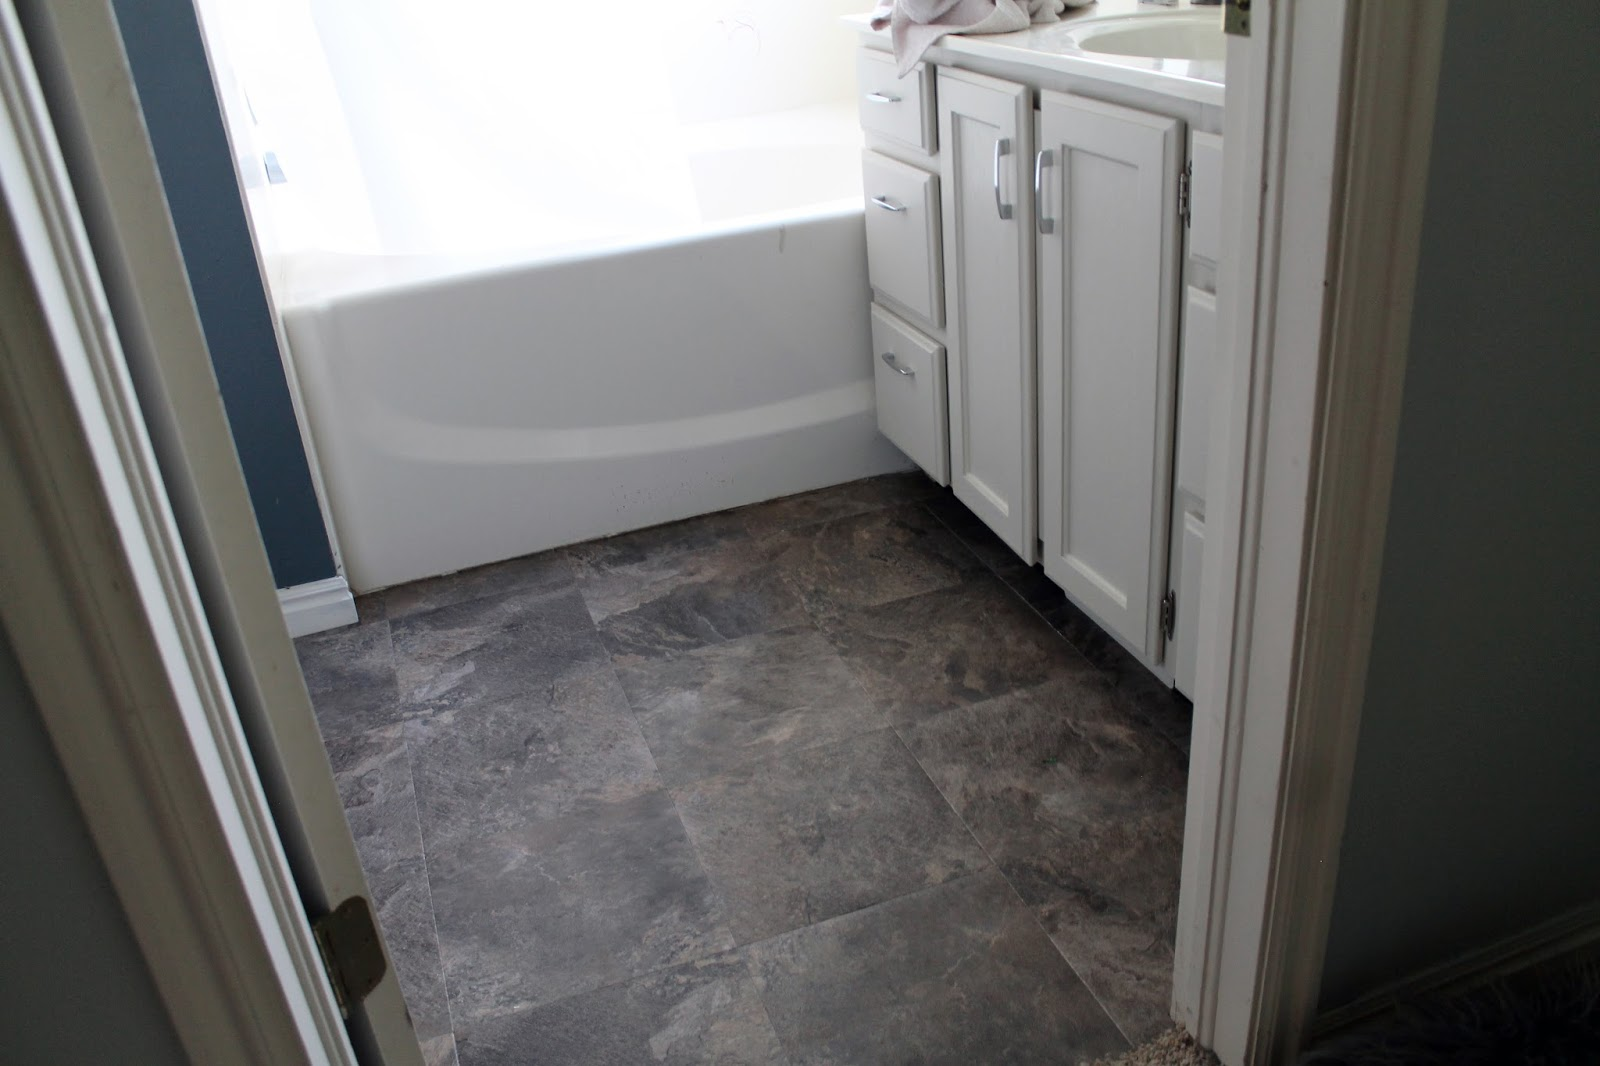 Peel and stick bathroom floors chris loves julia Bathroom flooring tile